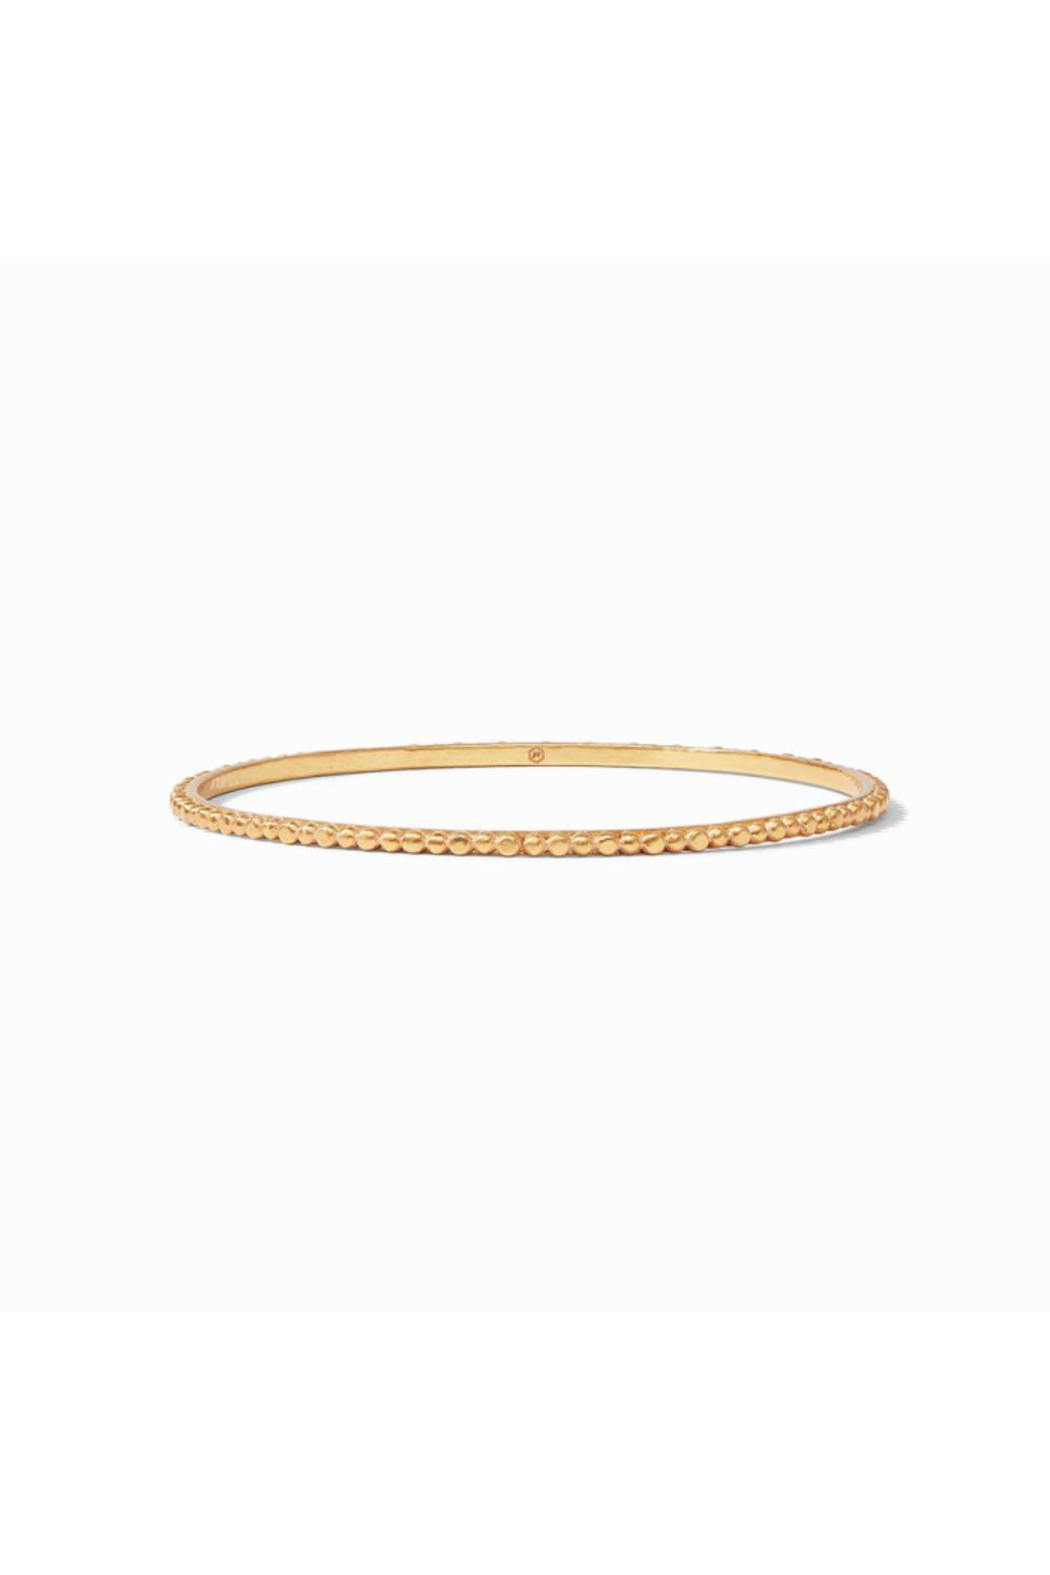 Julie Vos Colette Bead Bangle Gold Small - Main Image